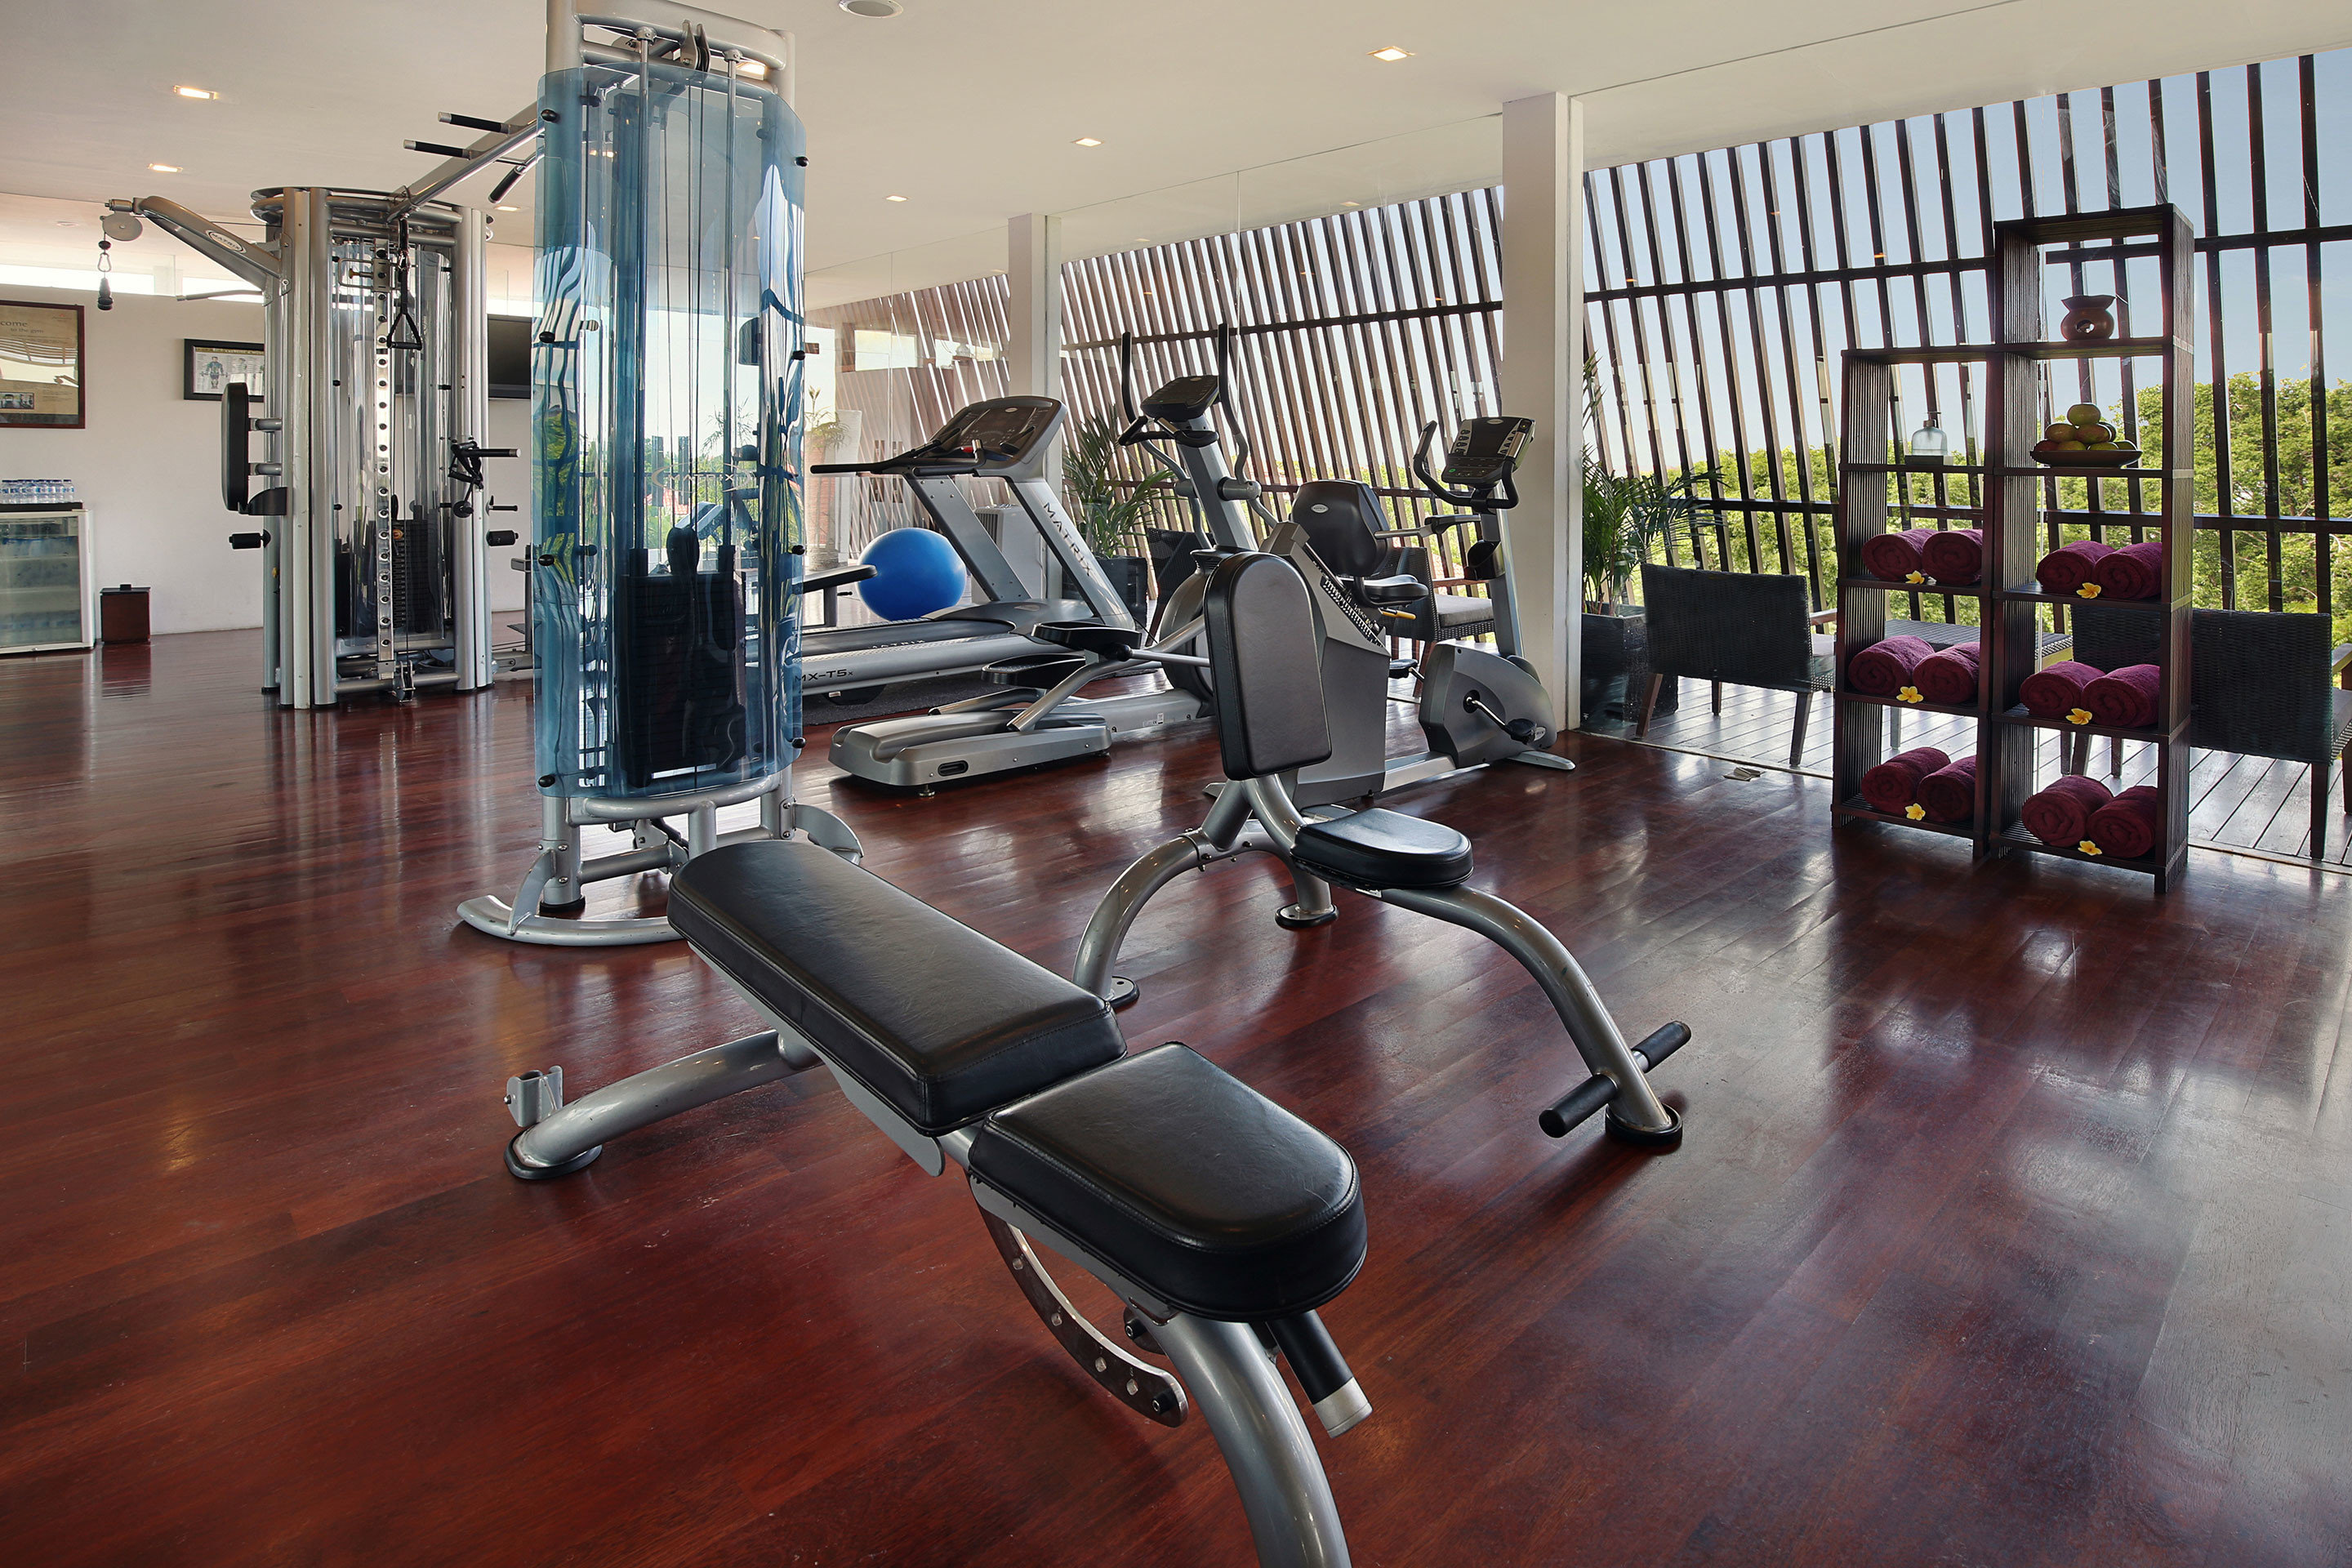 Fitness Scenic views Sport Wellness structure gym property sport venue condominium hard cluttered